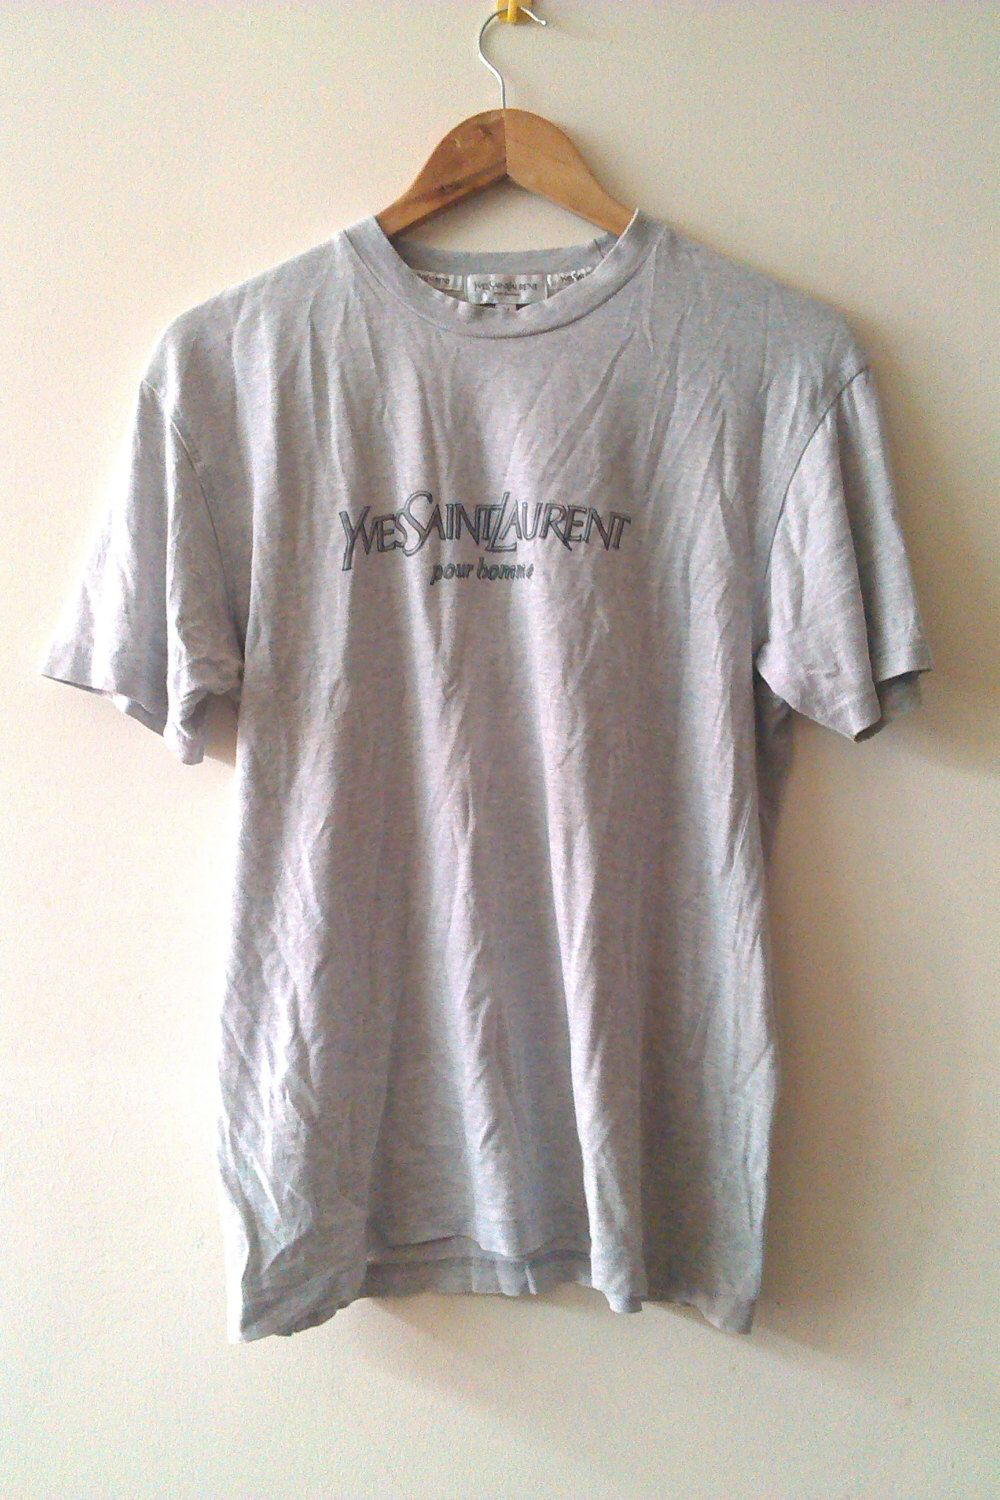 670b549e Rare Vintage Yves Saint Laurent Pour Homme T shirt Grey shirt Hip Hop Swag  High Fashion